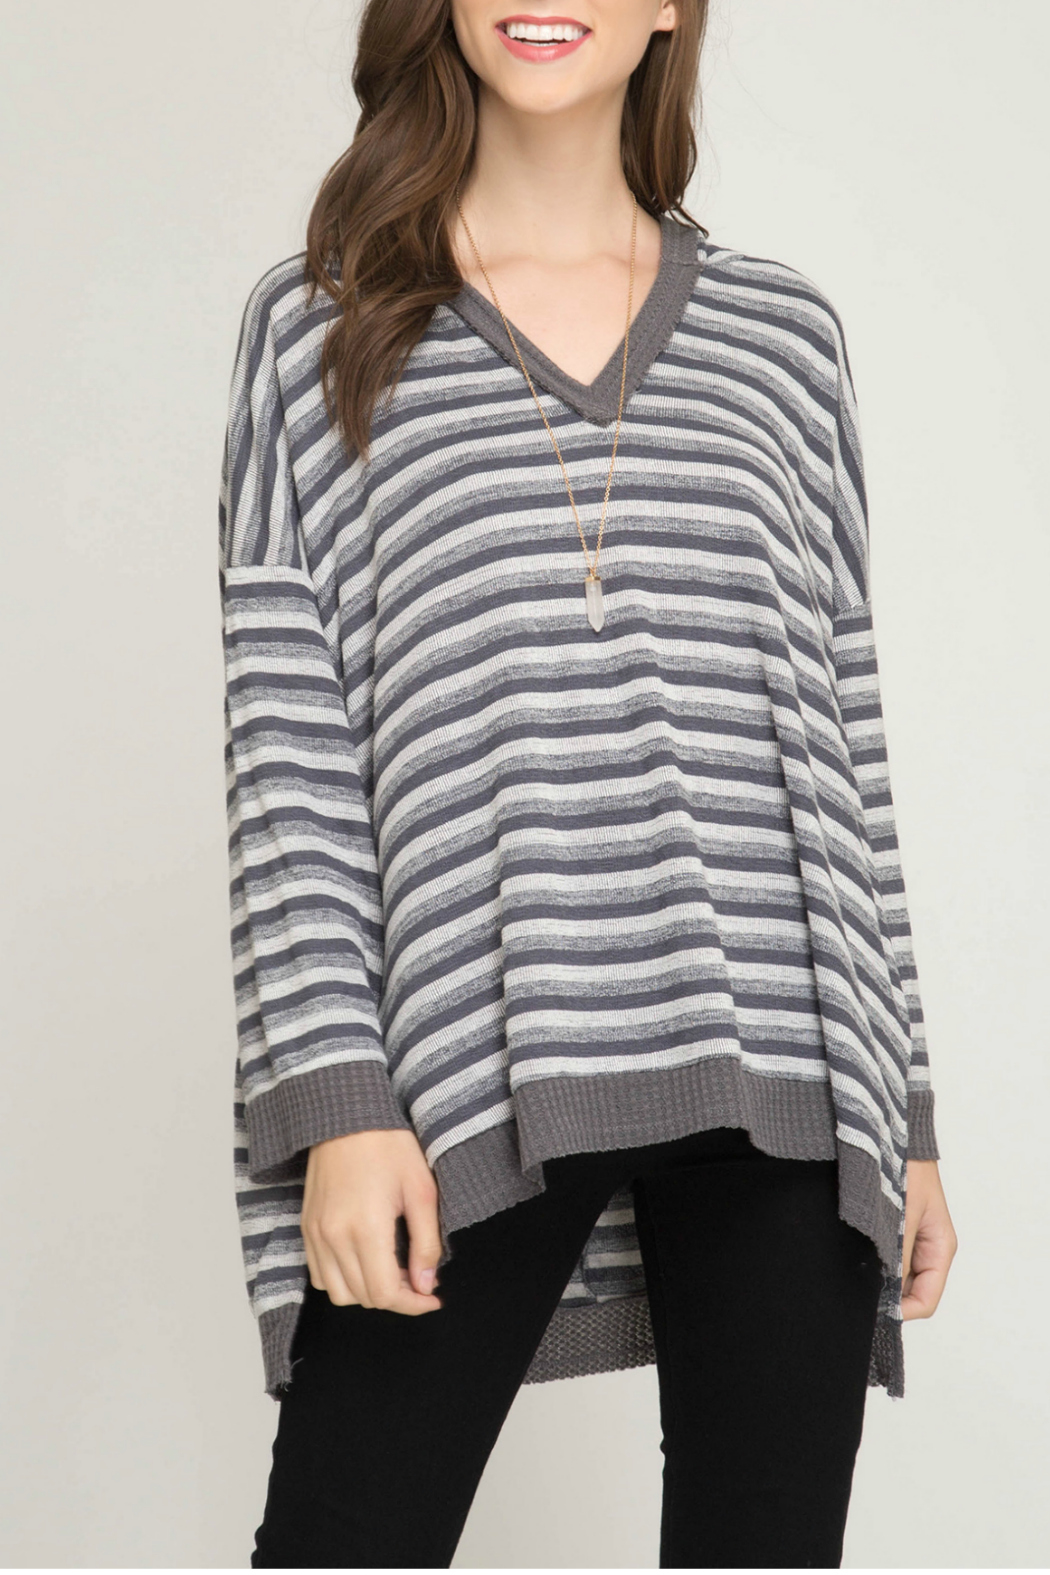 She + Sky Long sleeve striped knit pullover top with hood - Main Image